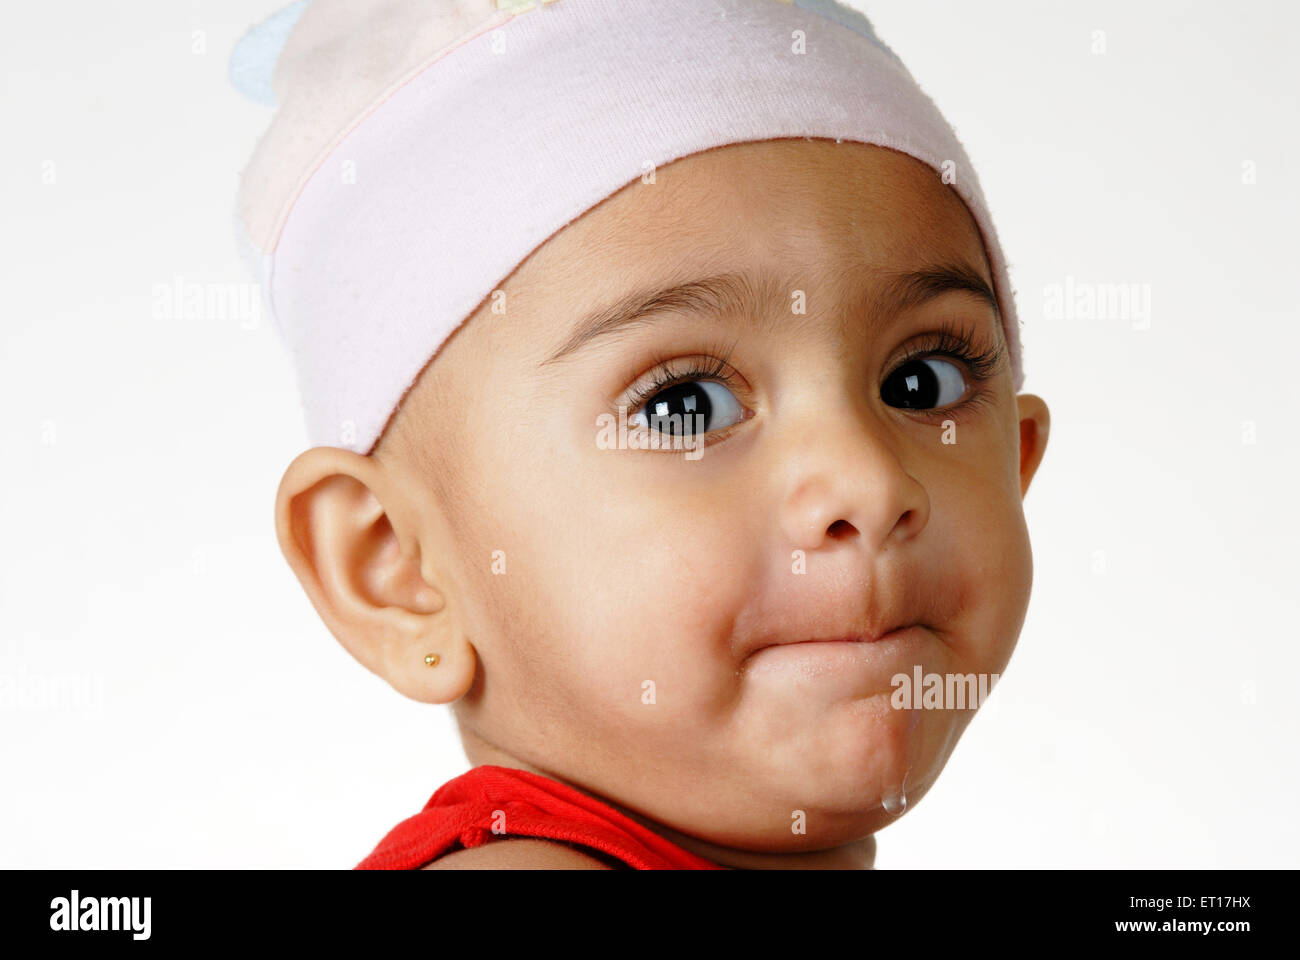 Indian baby boy lips pressed looking at camera India -  MR#512 - RMM 150201 - Stock Image